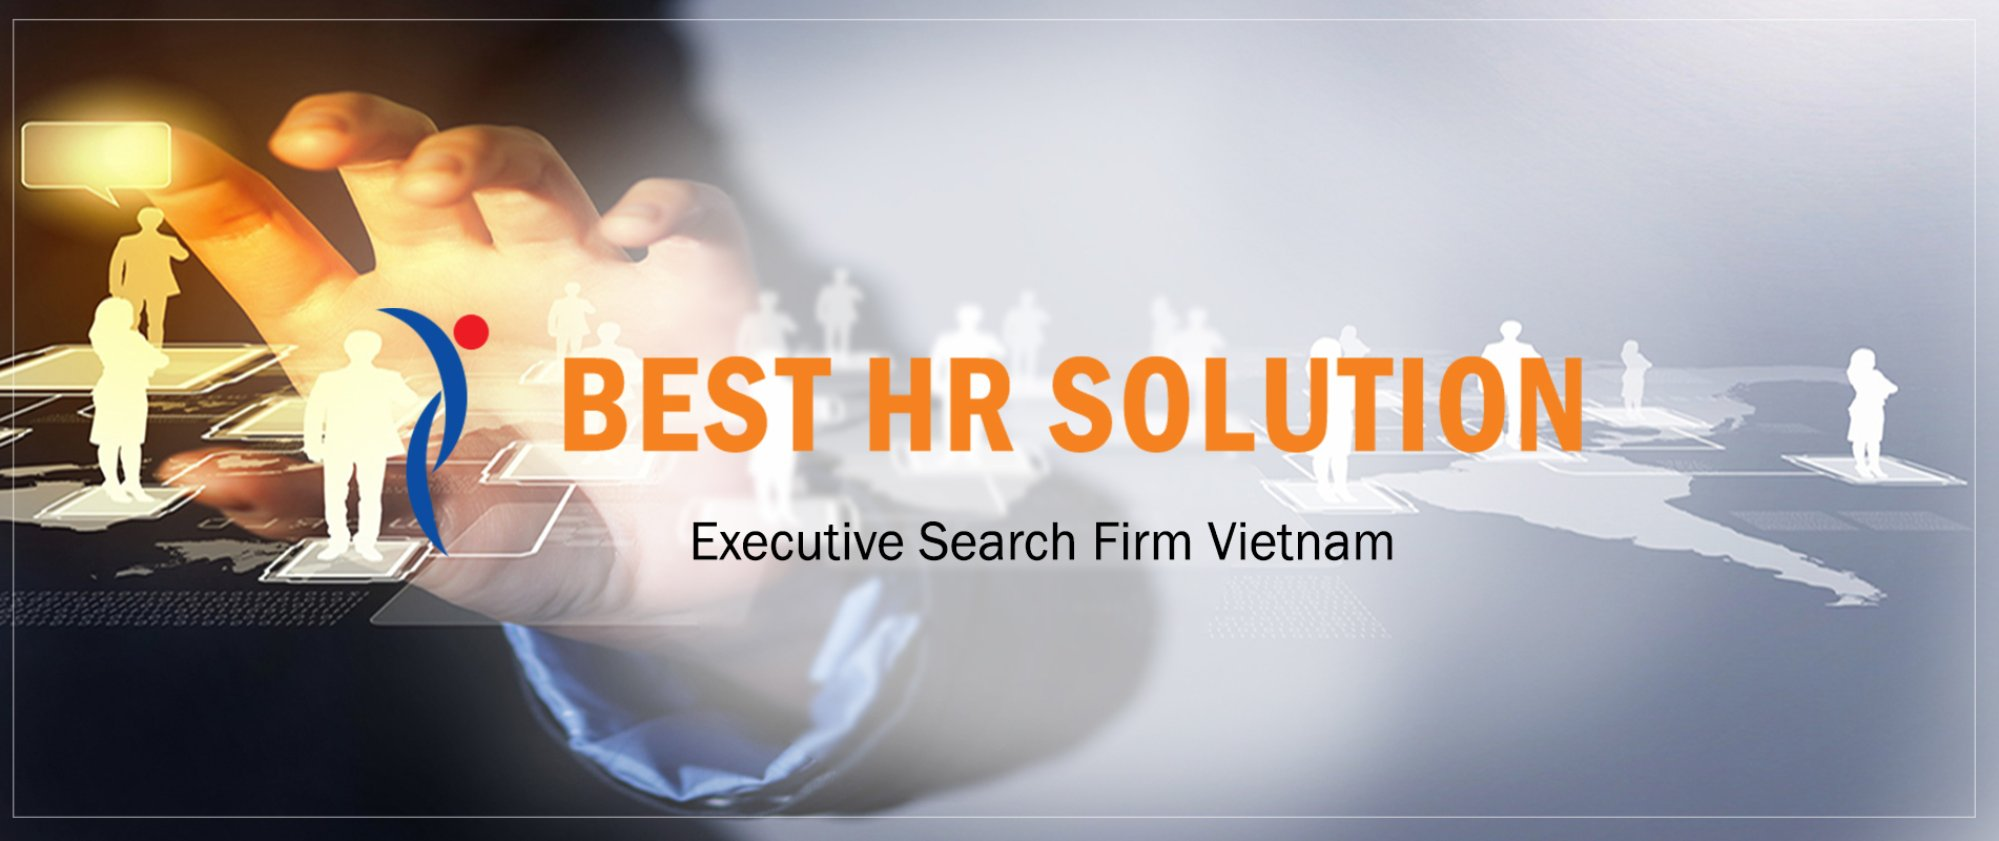 Best HR Solution - Best HR Solution Company Limited